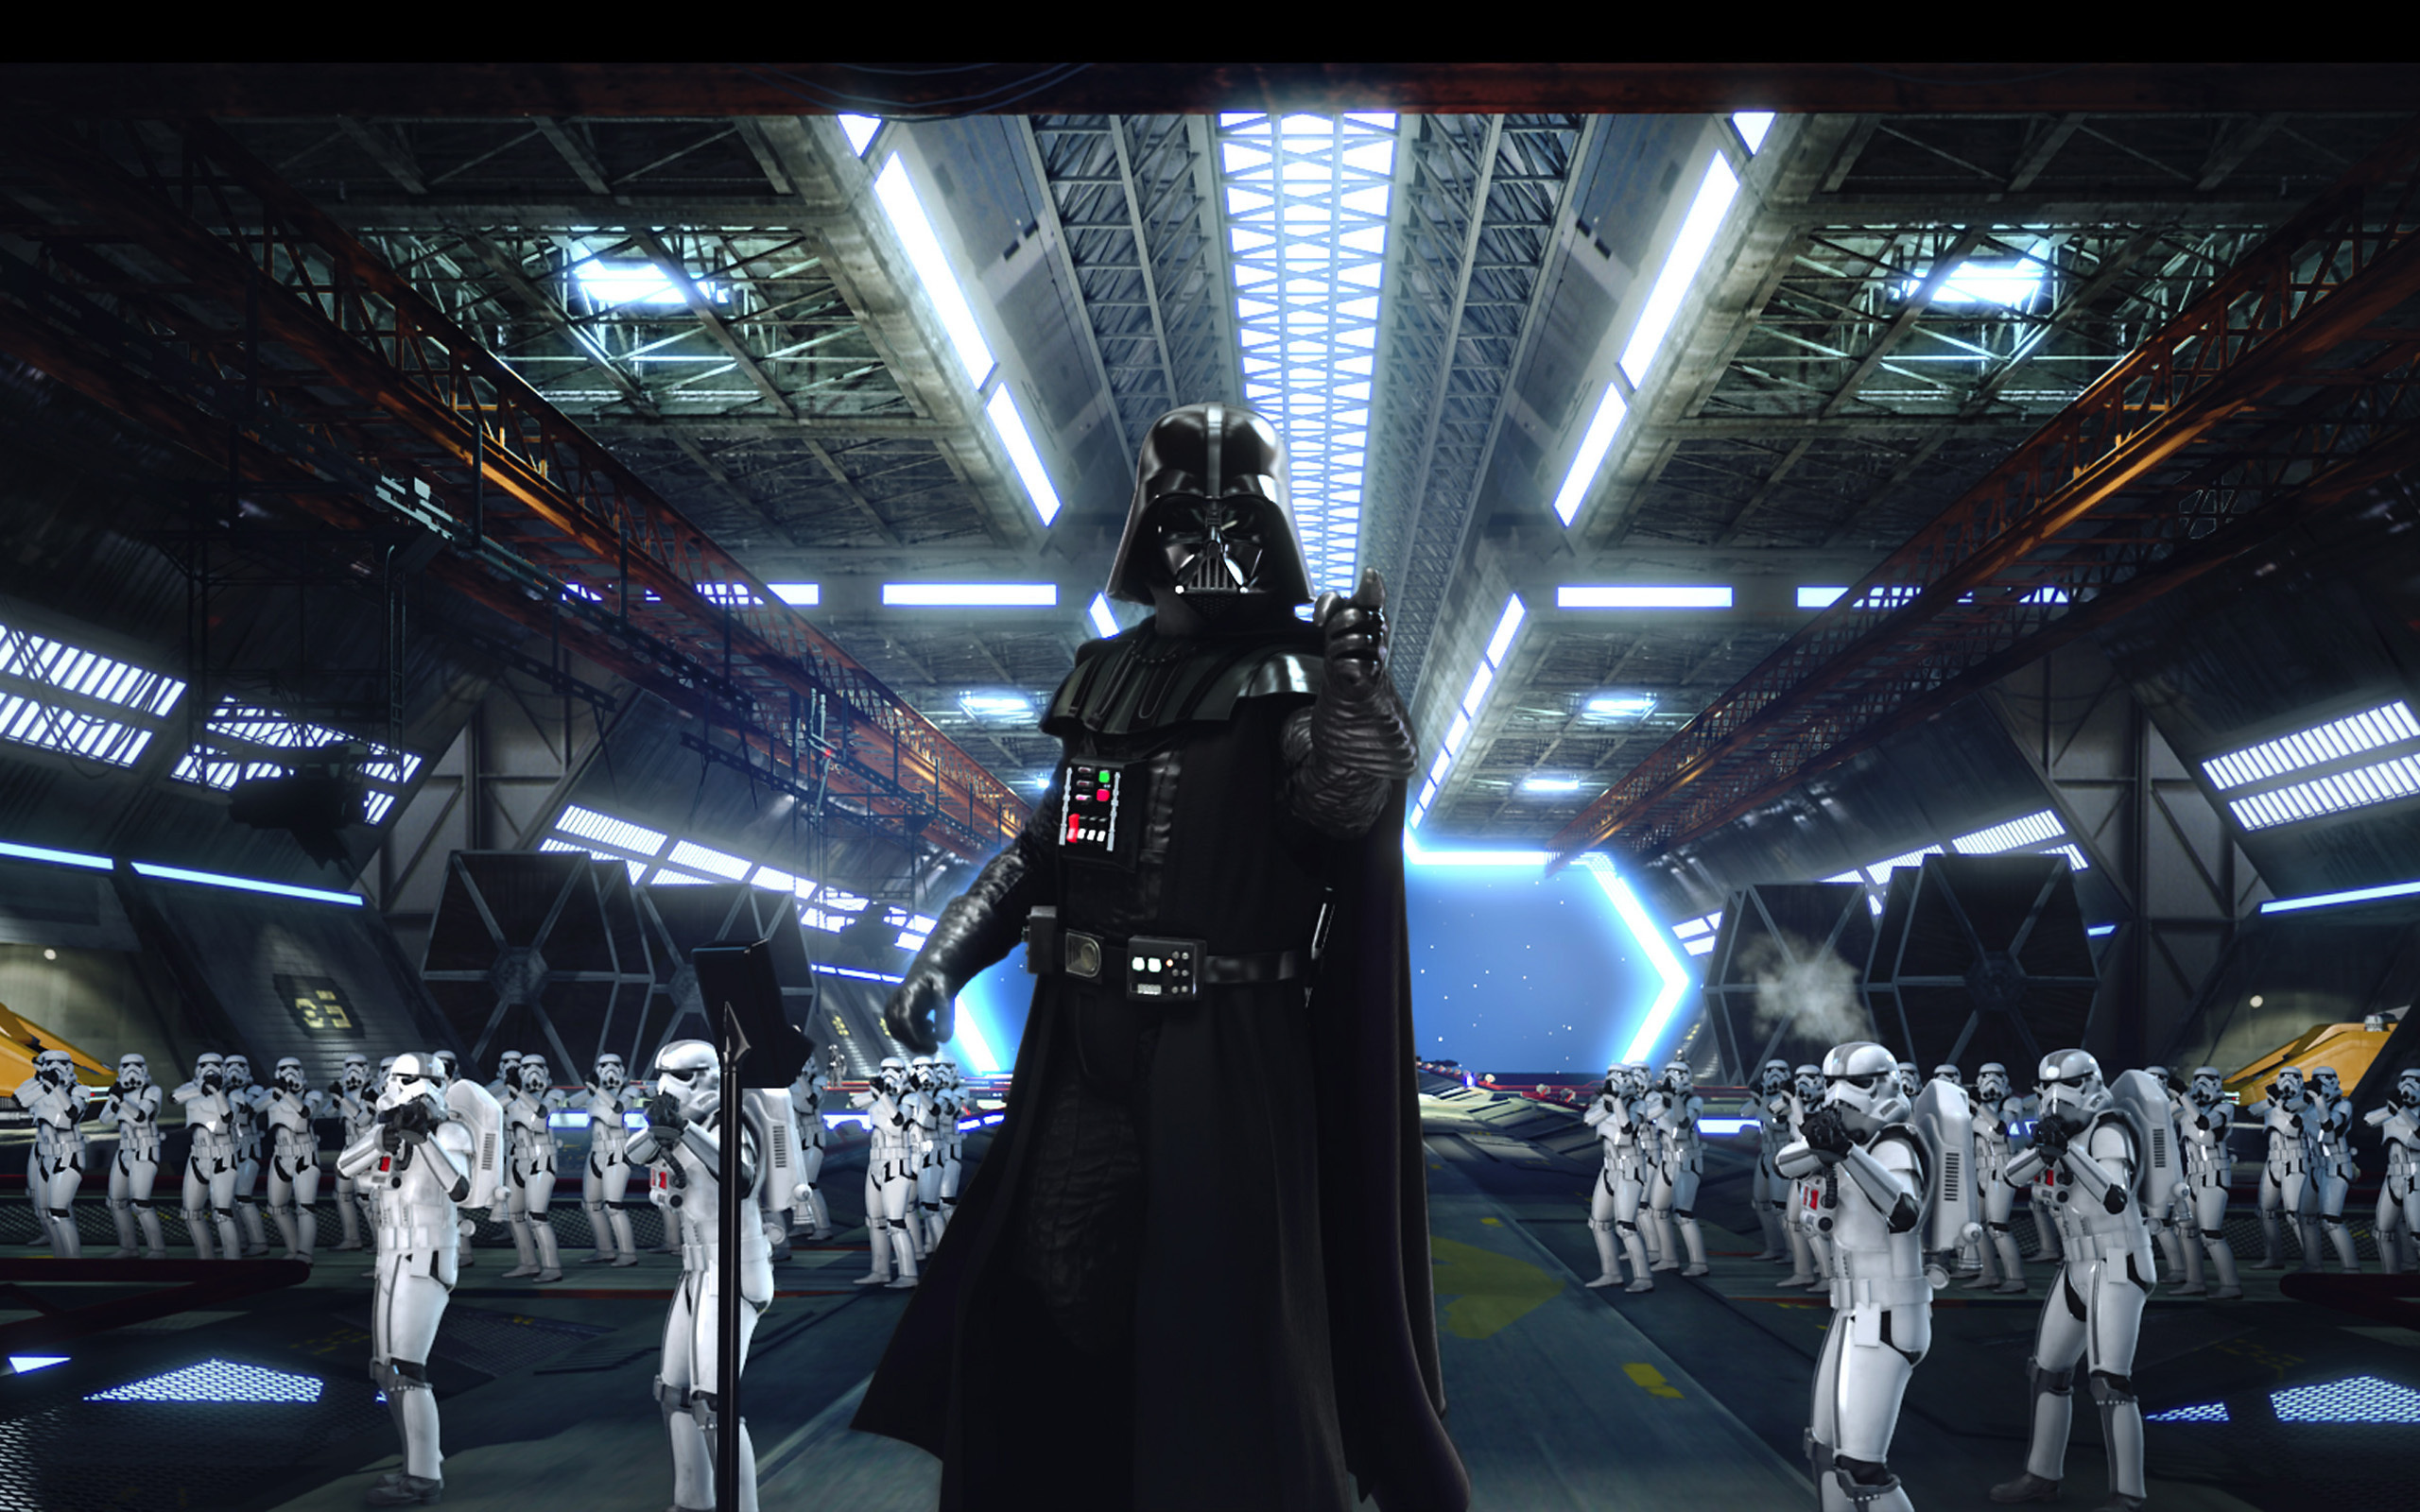 darth vader wallpapers download backgrounds computer hd wallpapers hd 2560x1600